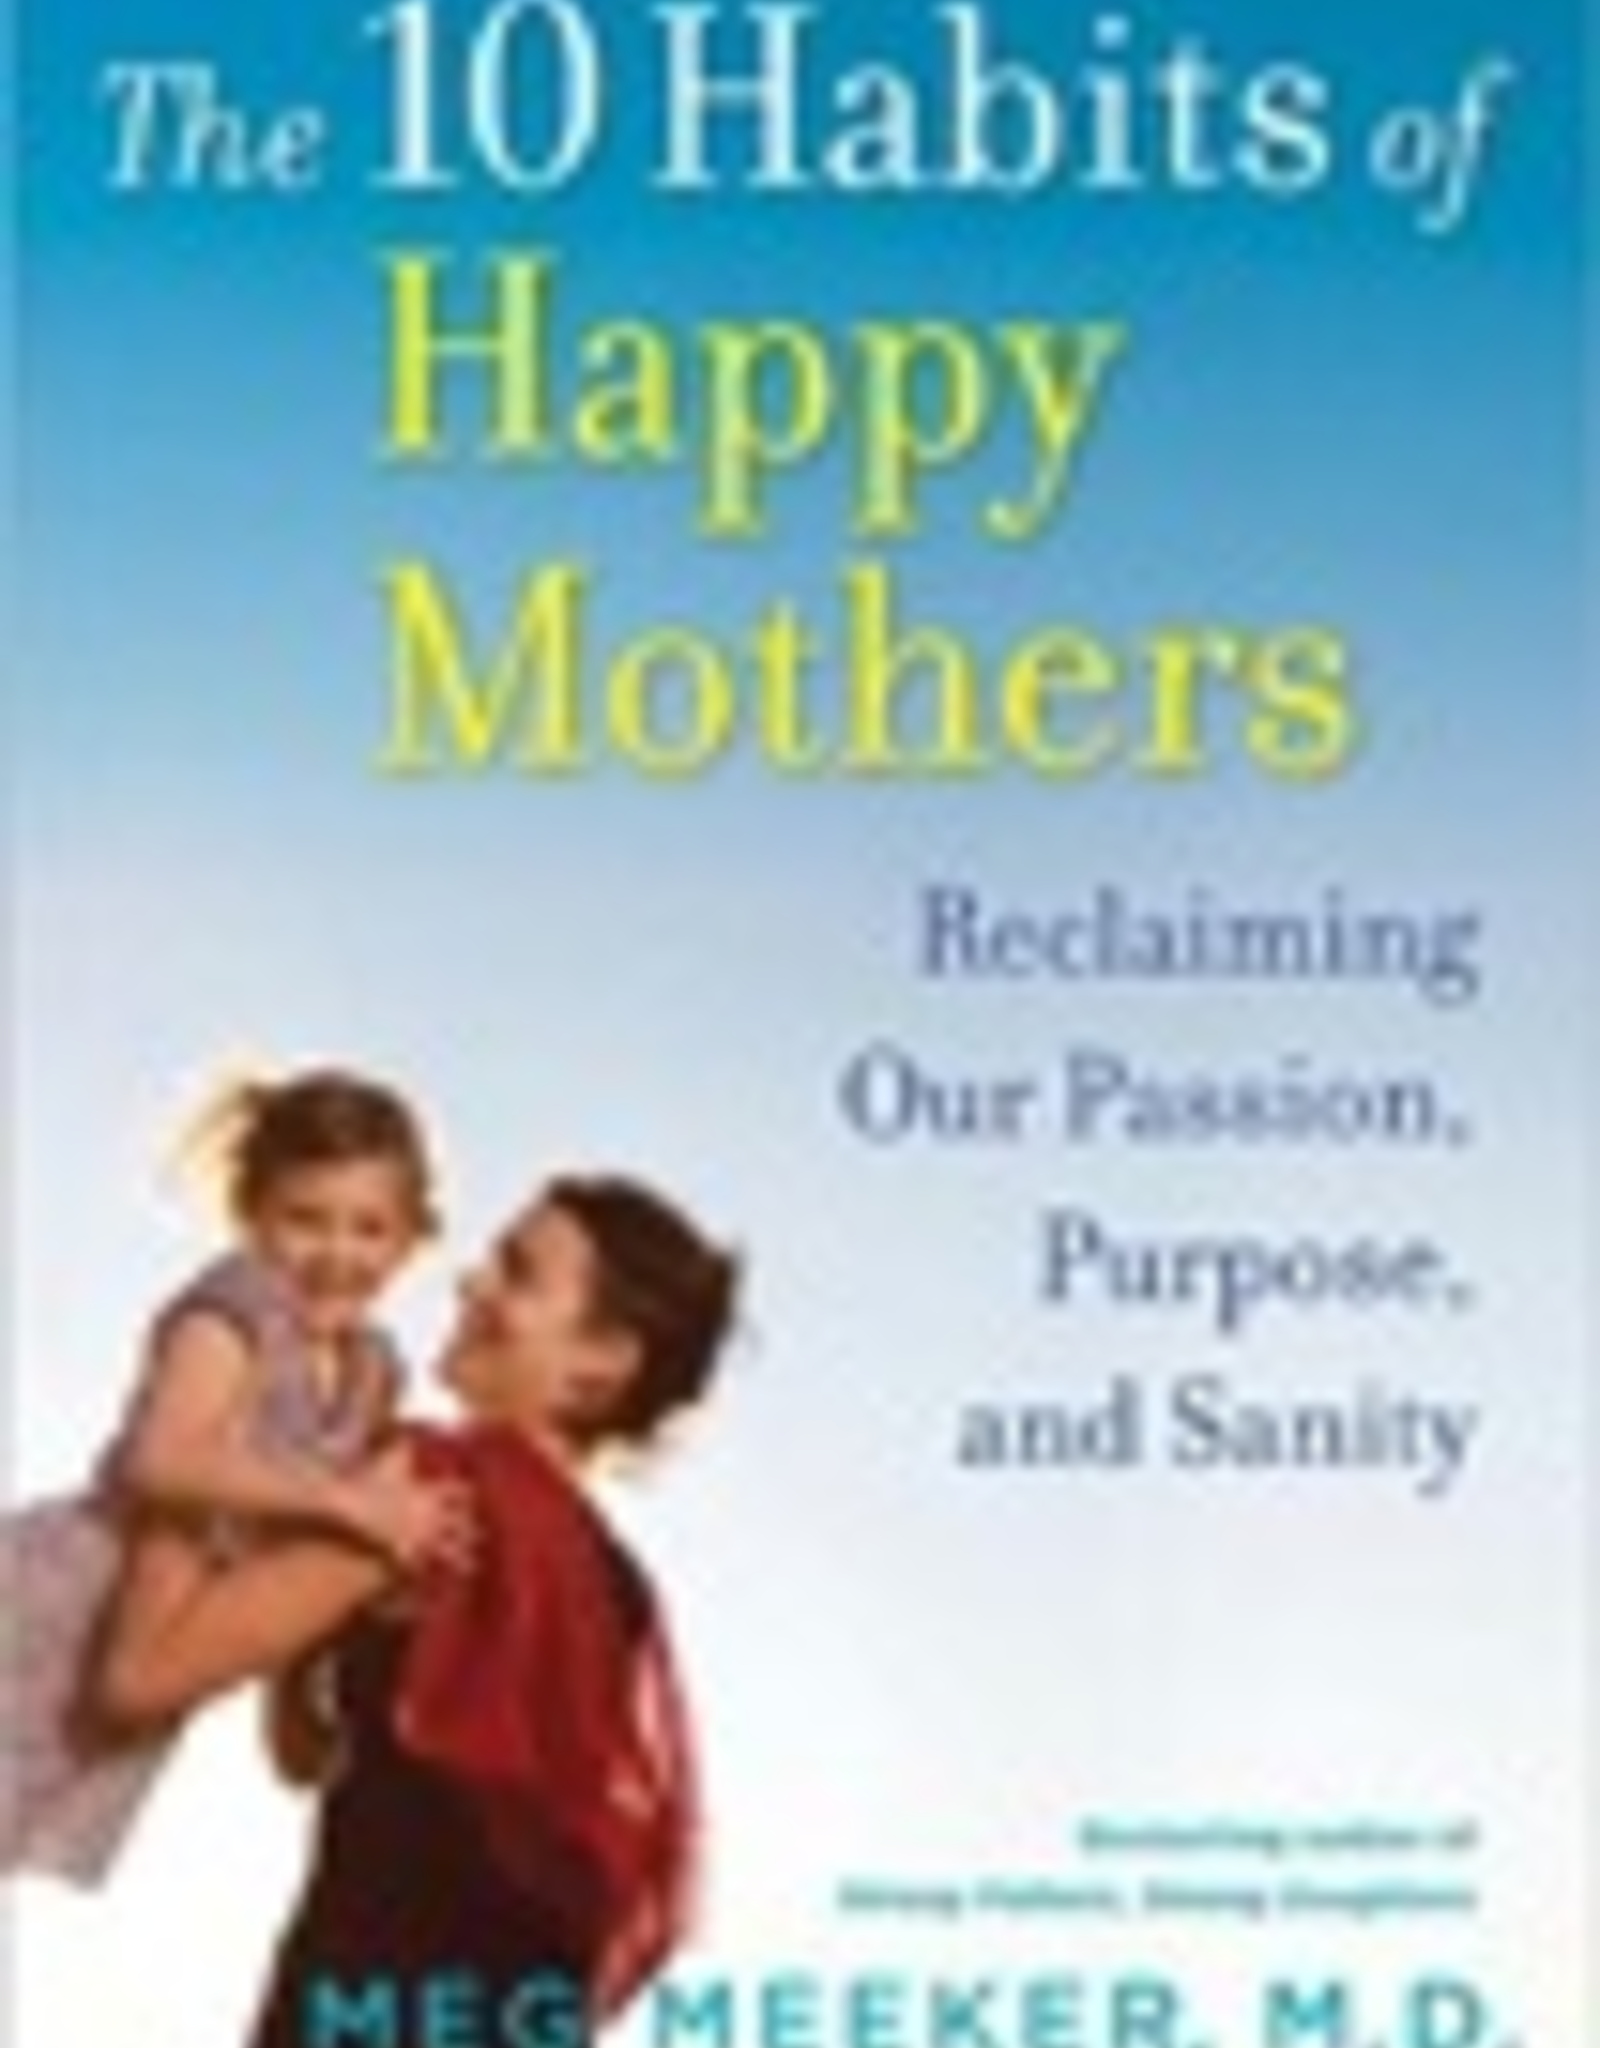 Ignatius Press The Ten Habits of Happy Mothers:  Reclaiming Our Passion, Purpose and Sanity, by Meg Meeker (paperback)